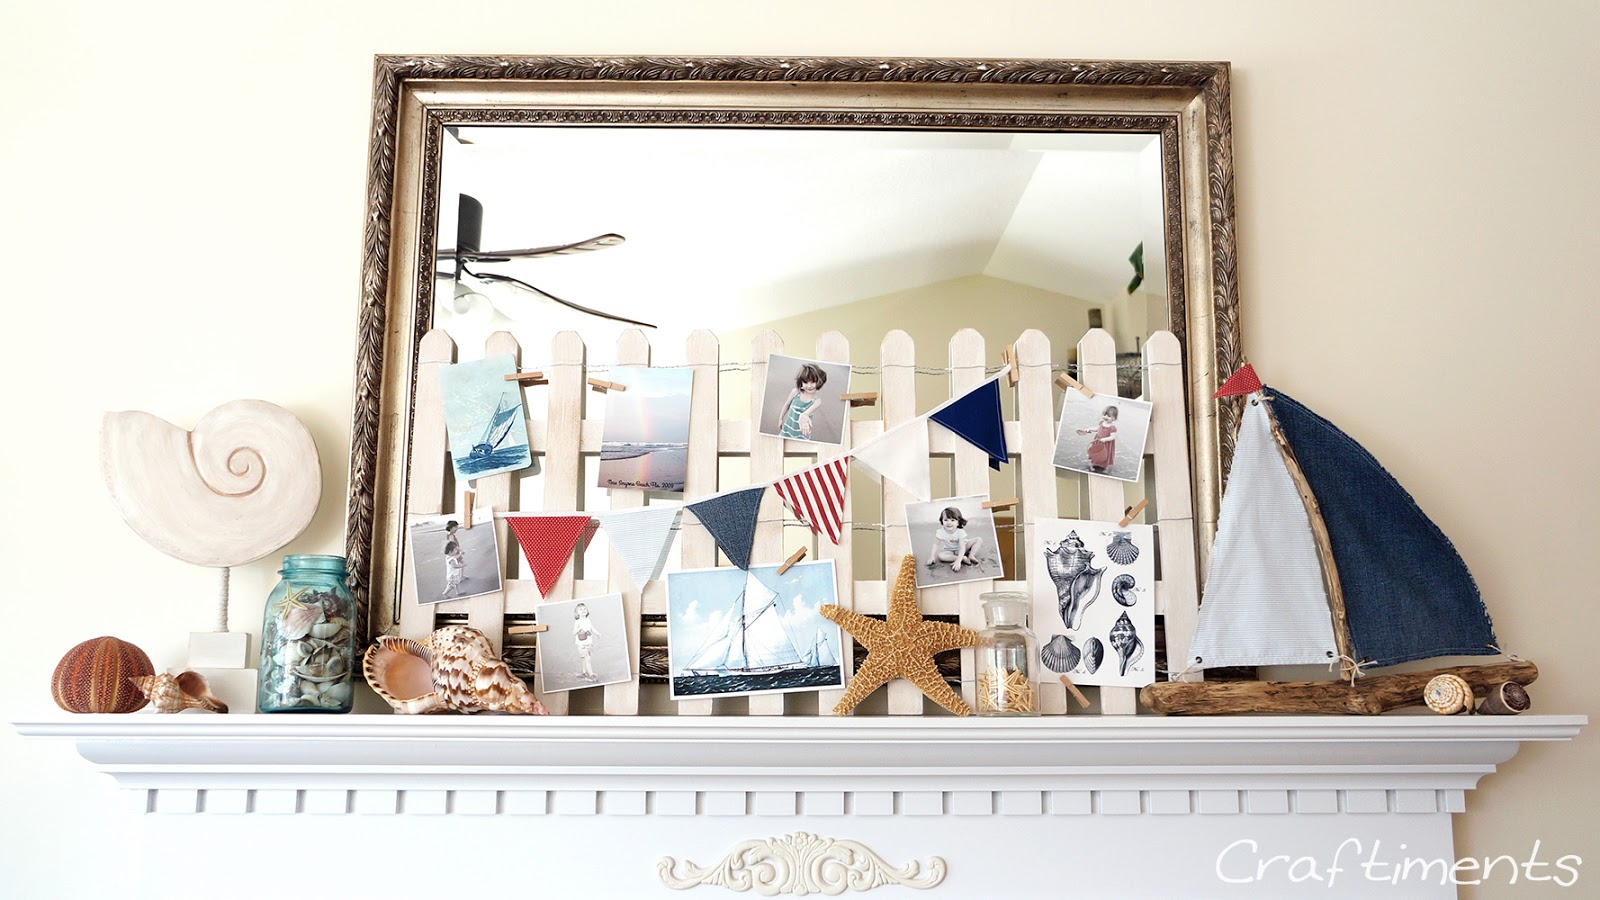 Craftiments:  Beach Fence Summer Mantel